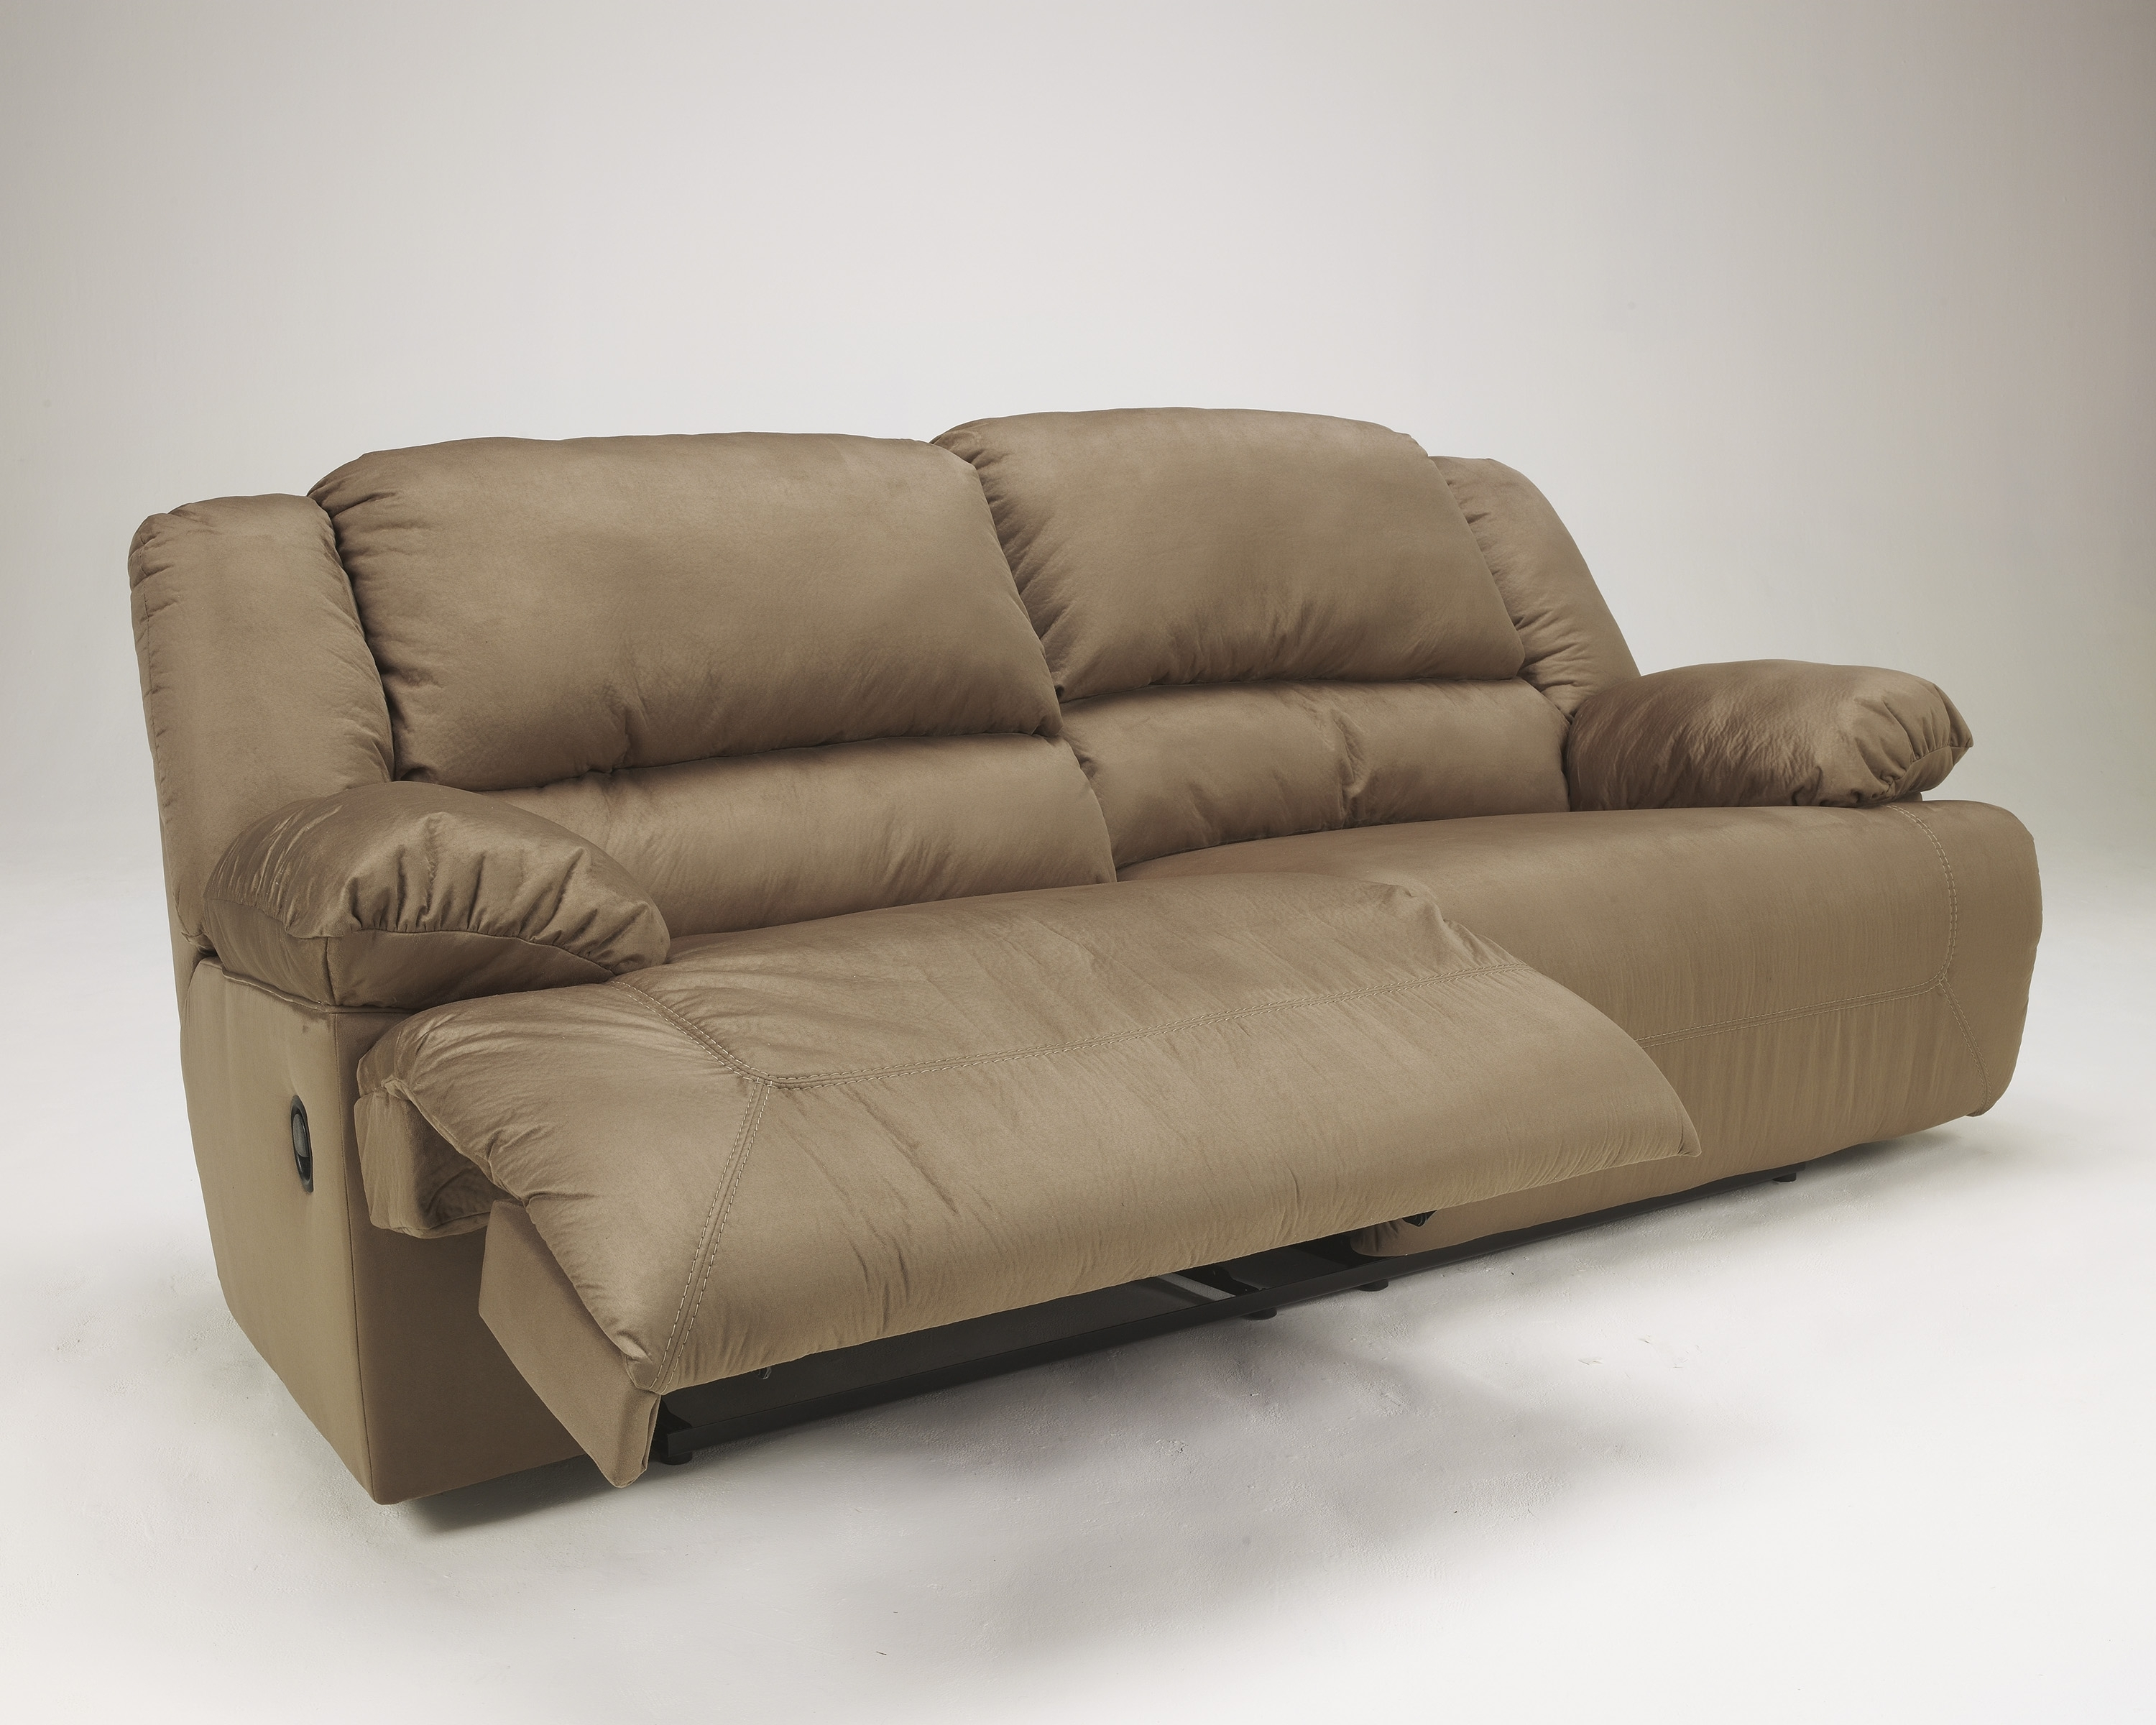 Furniture Find Your Maximum Comfort With Reclining Couches For Couch intended for Aspen 2 Piece Sectionals With Raf Chaise (Image 16 of 30)